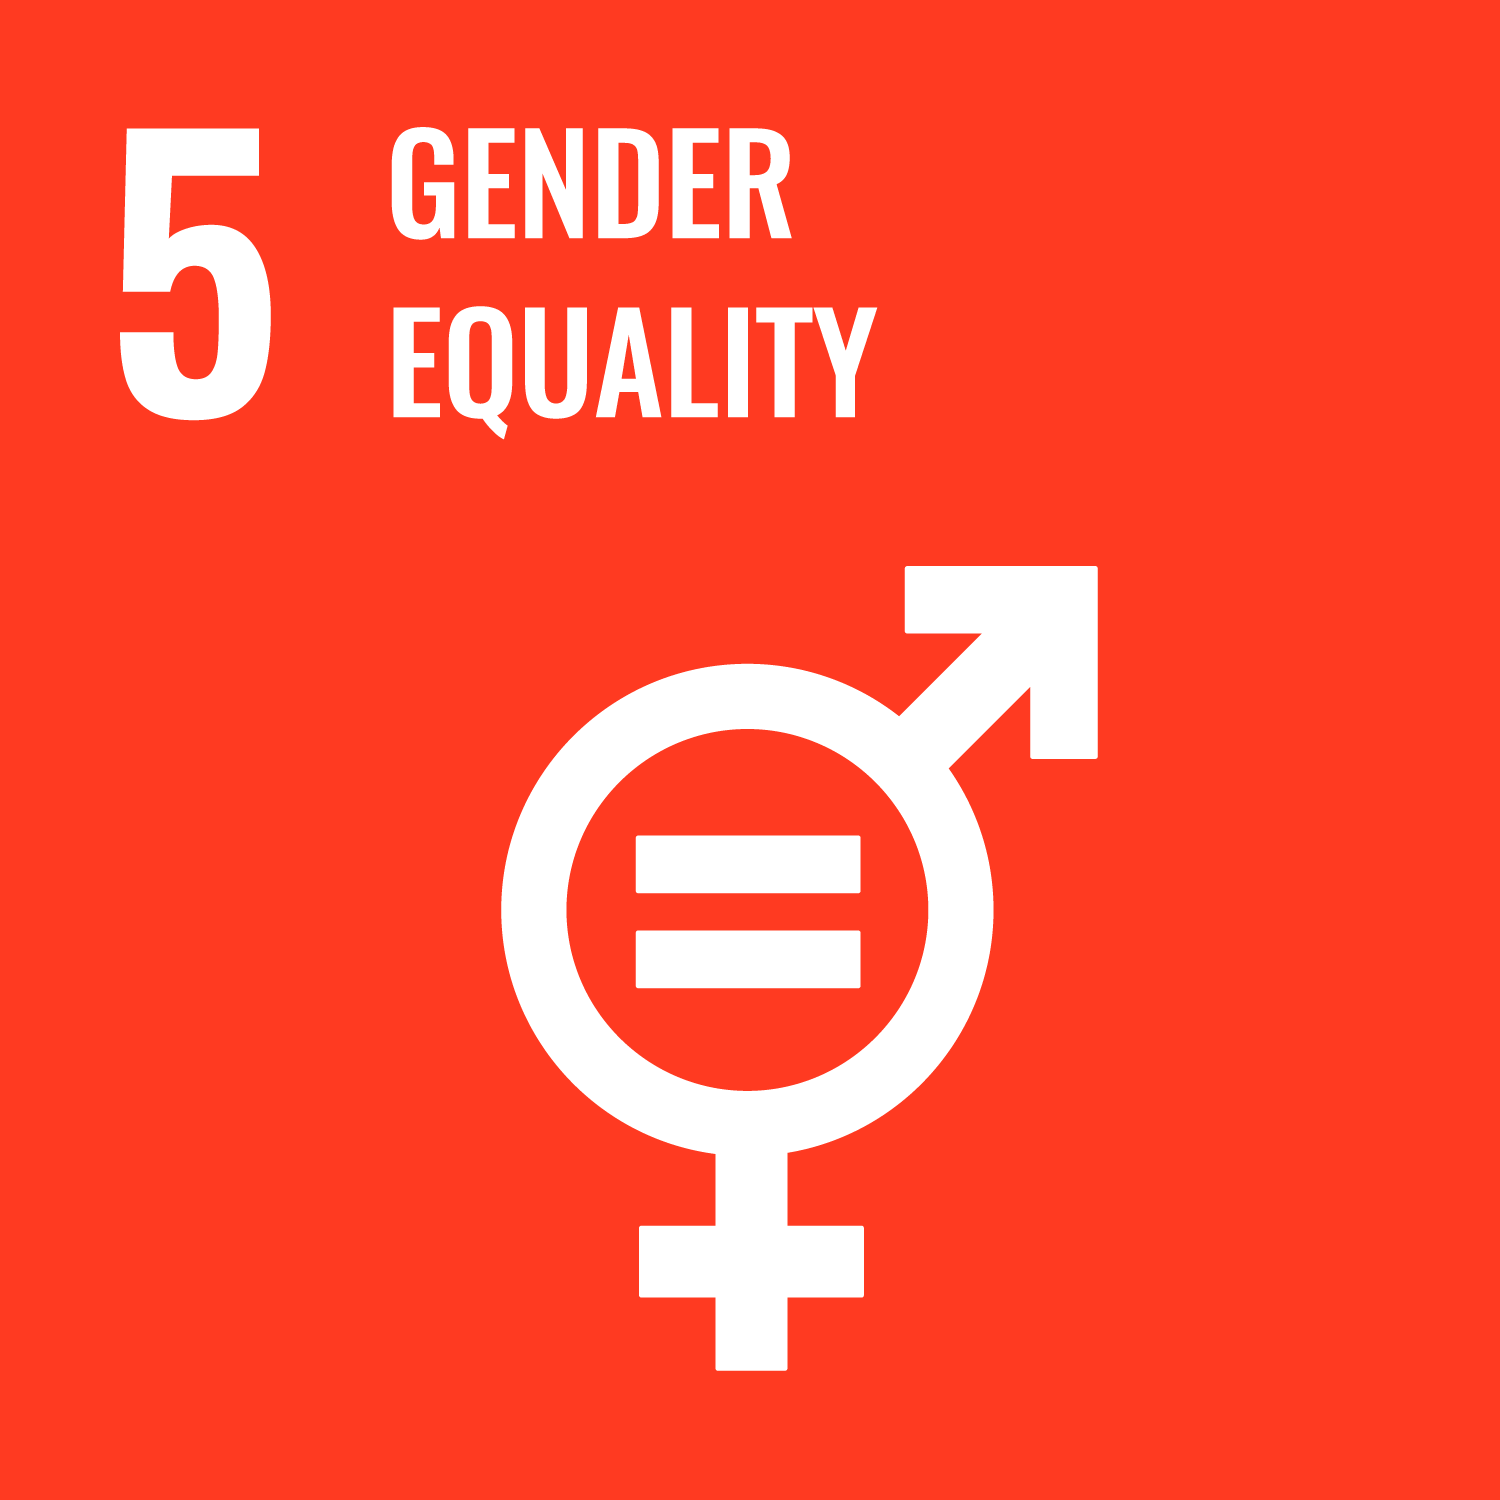 Sustainability Gender Equality